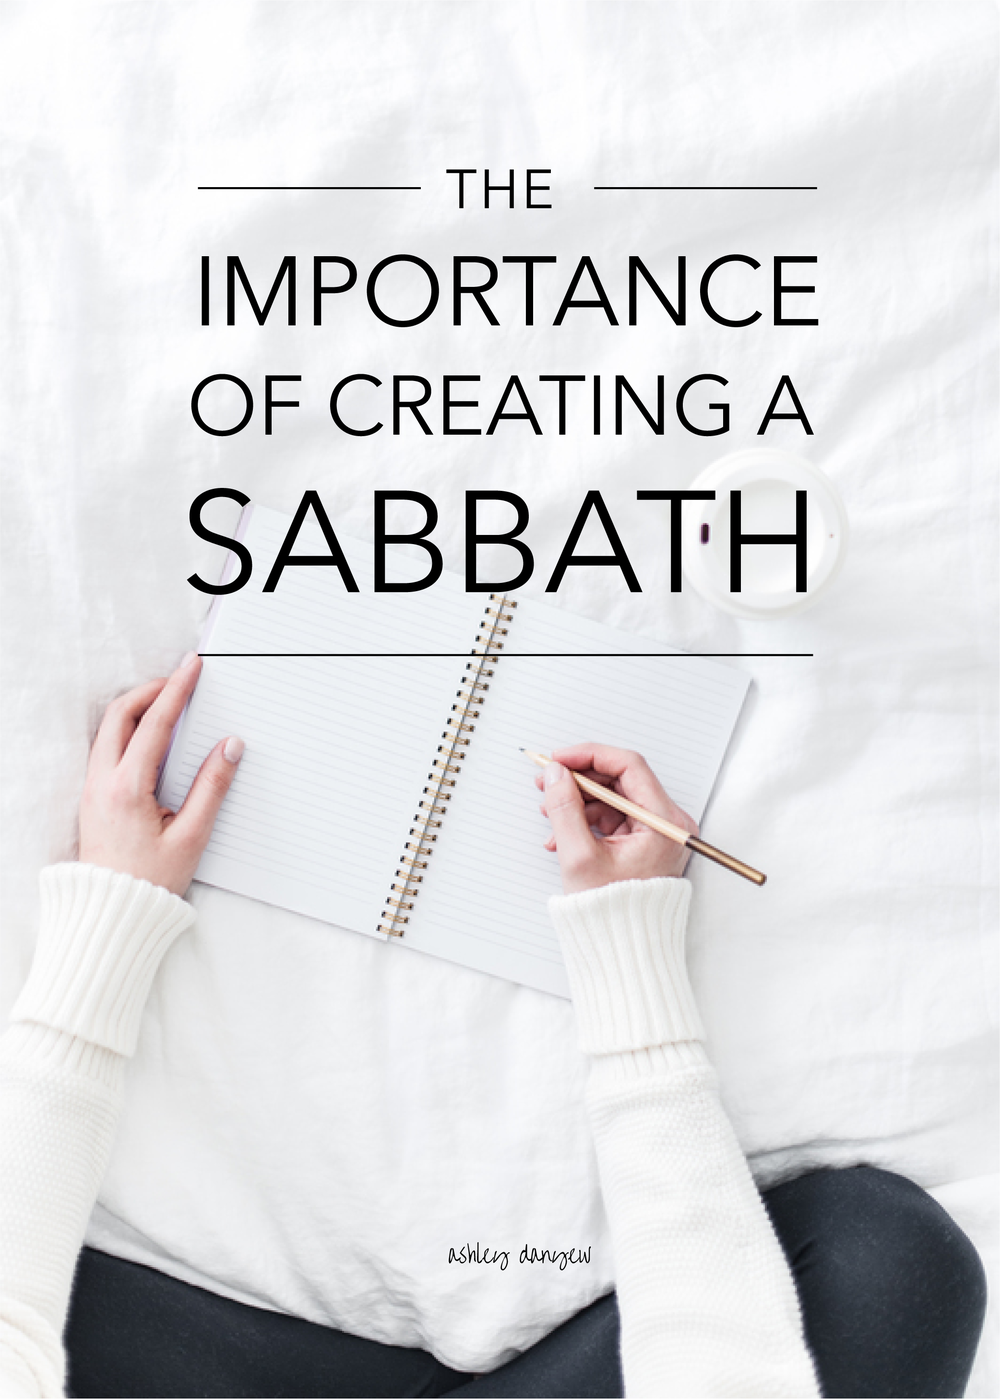 Copy of The Importance of Creating a Sabbath